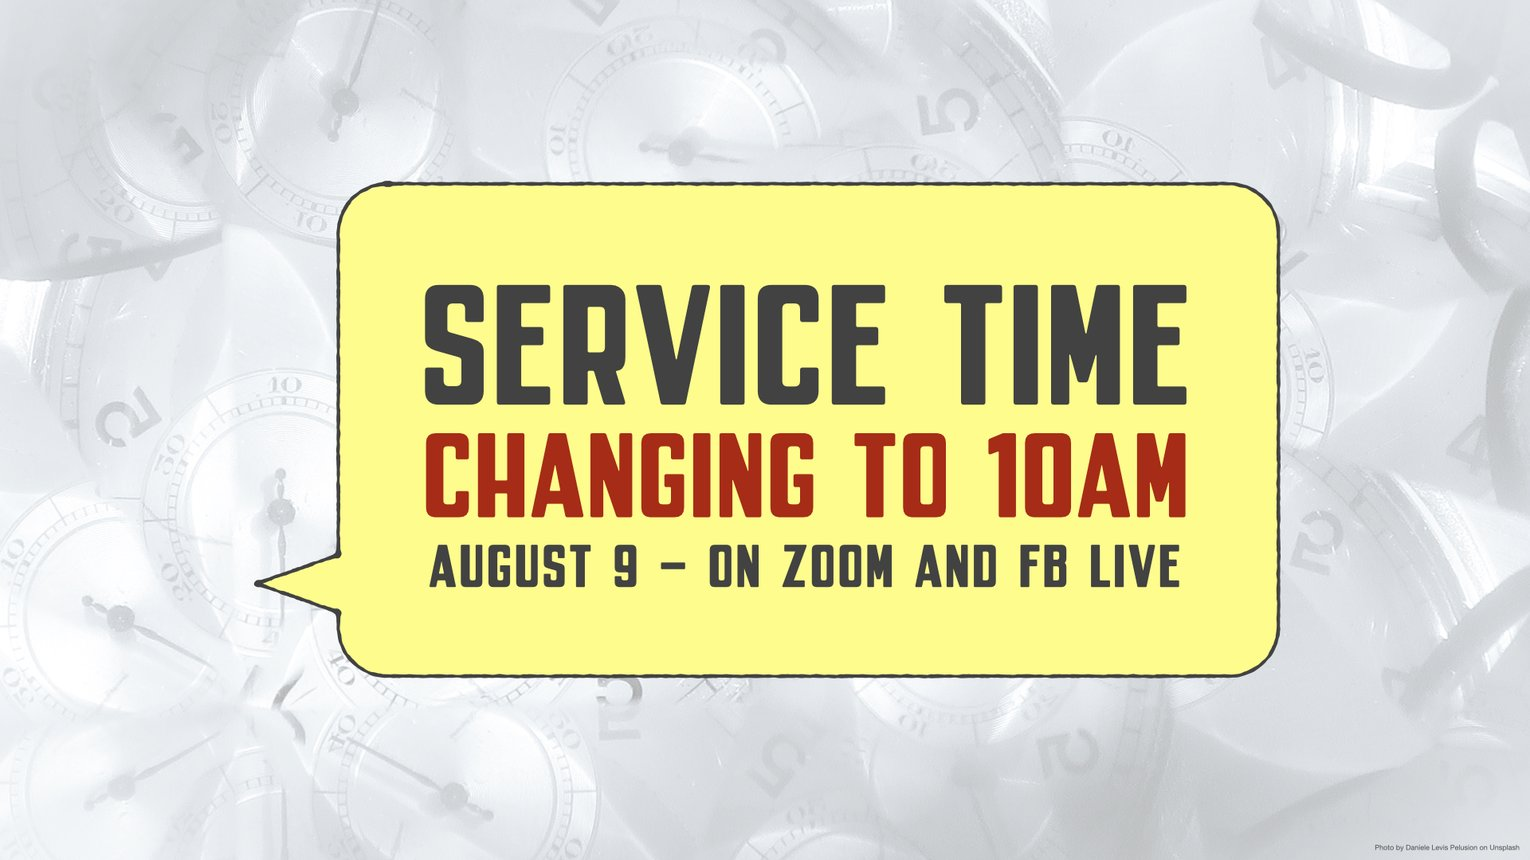 Service time change August 2020